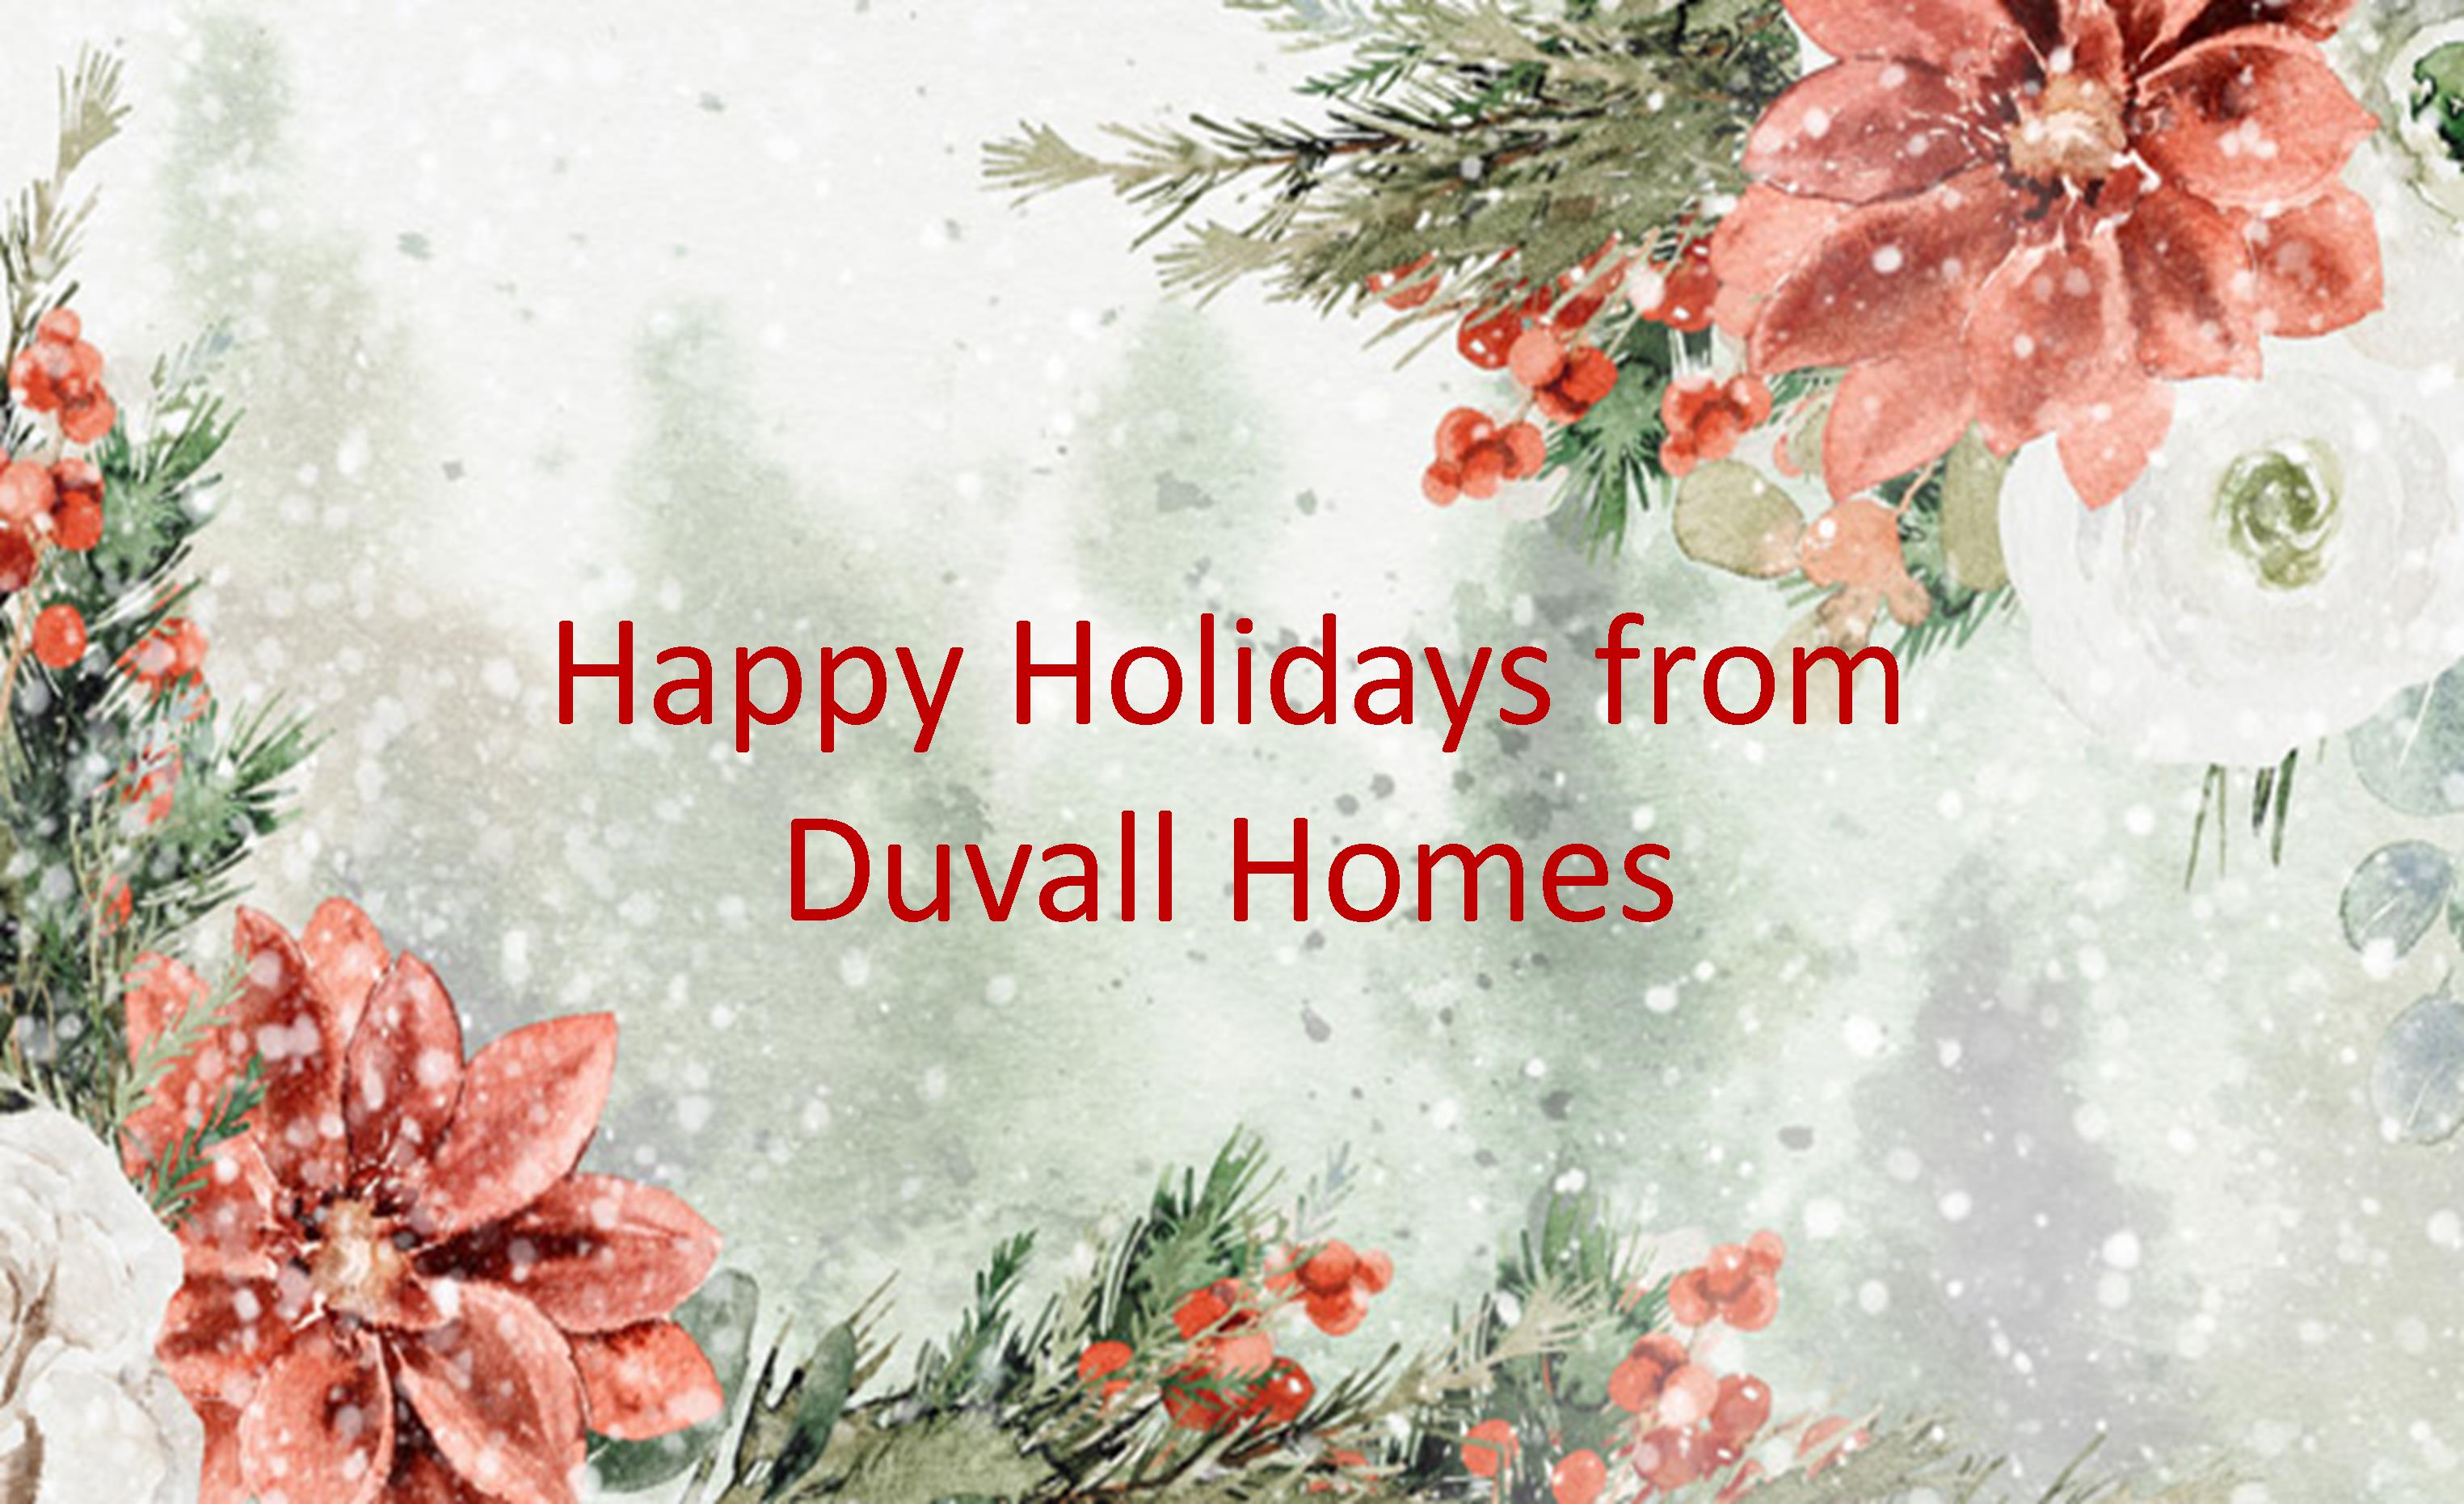 Merry Christmas and Happy New Year from Duvall Homes